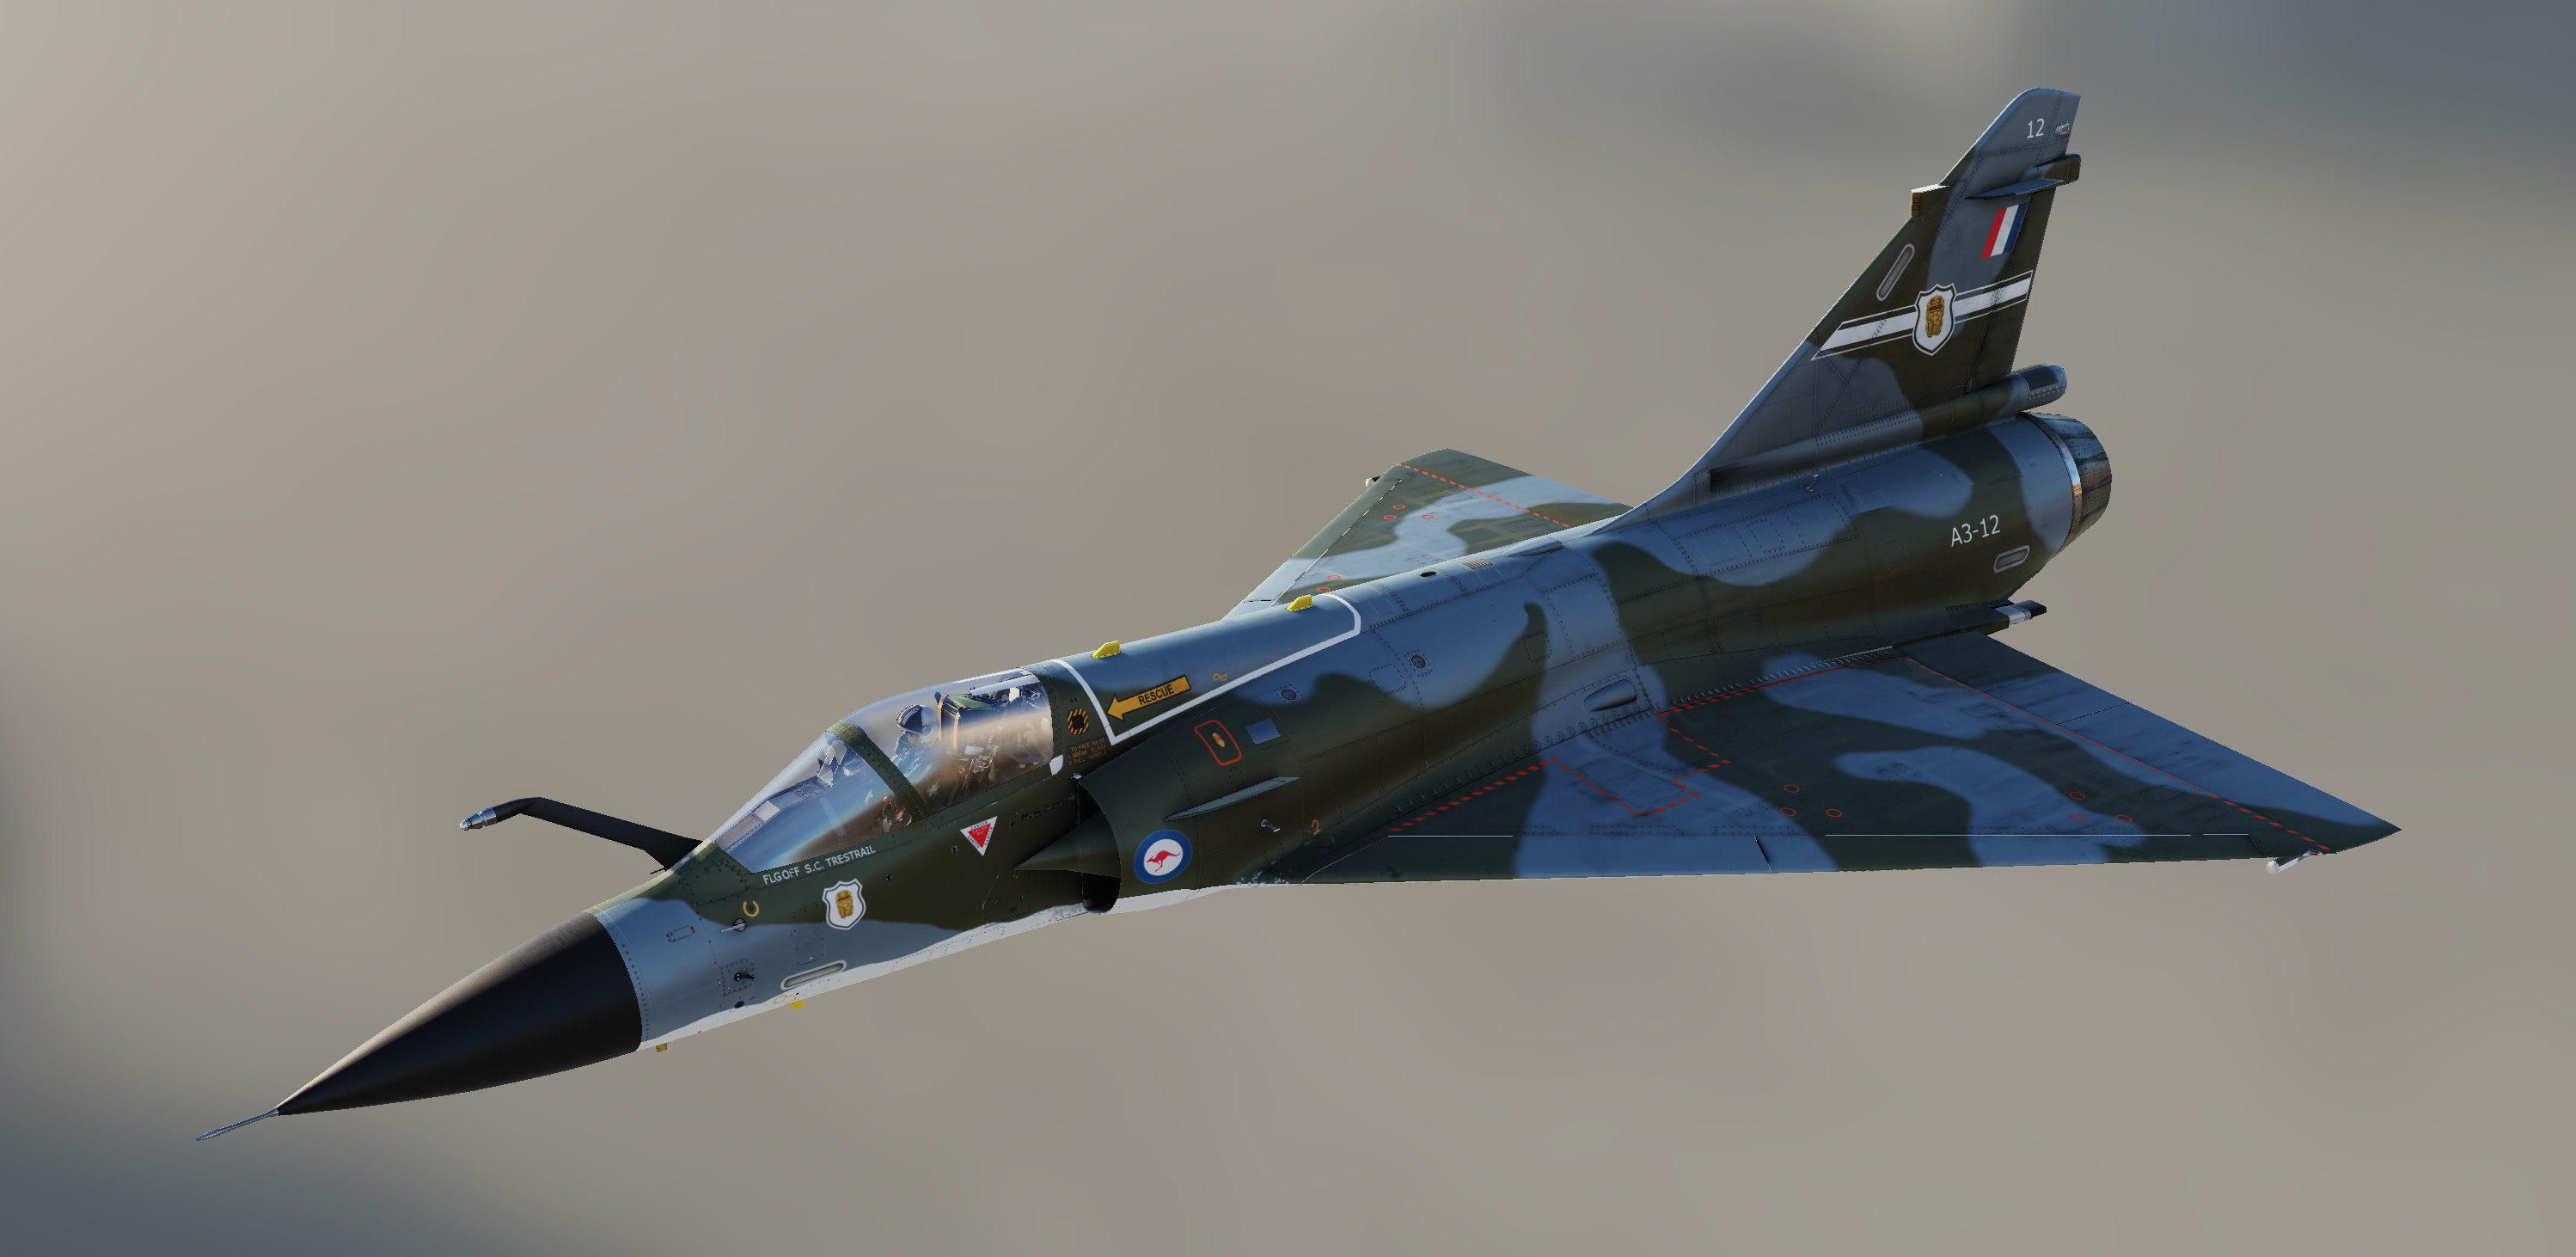 Mirage 2000-C RAAF 77 SQN (Fictional) A3-12